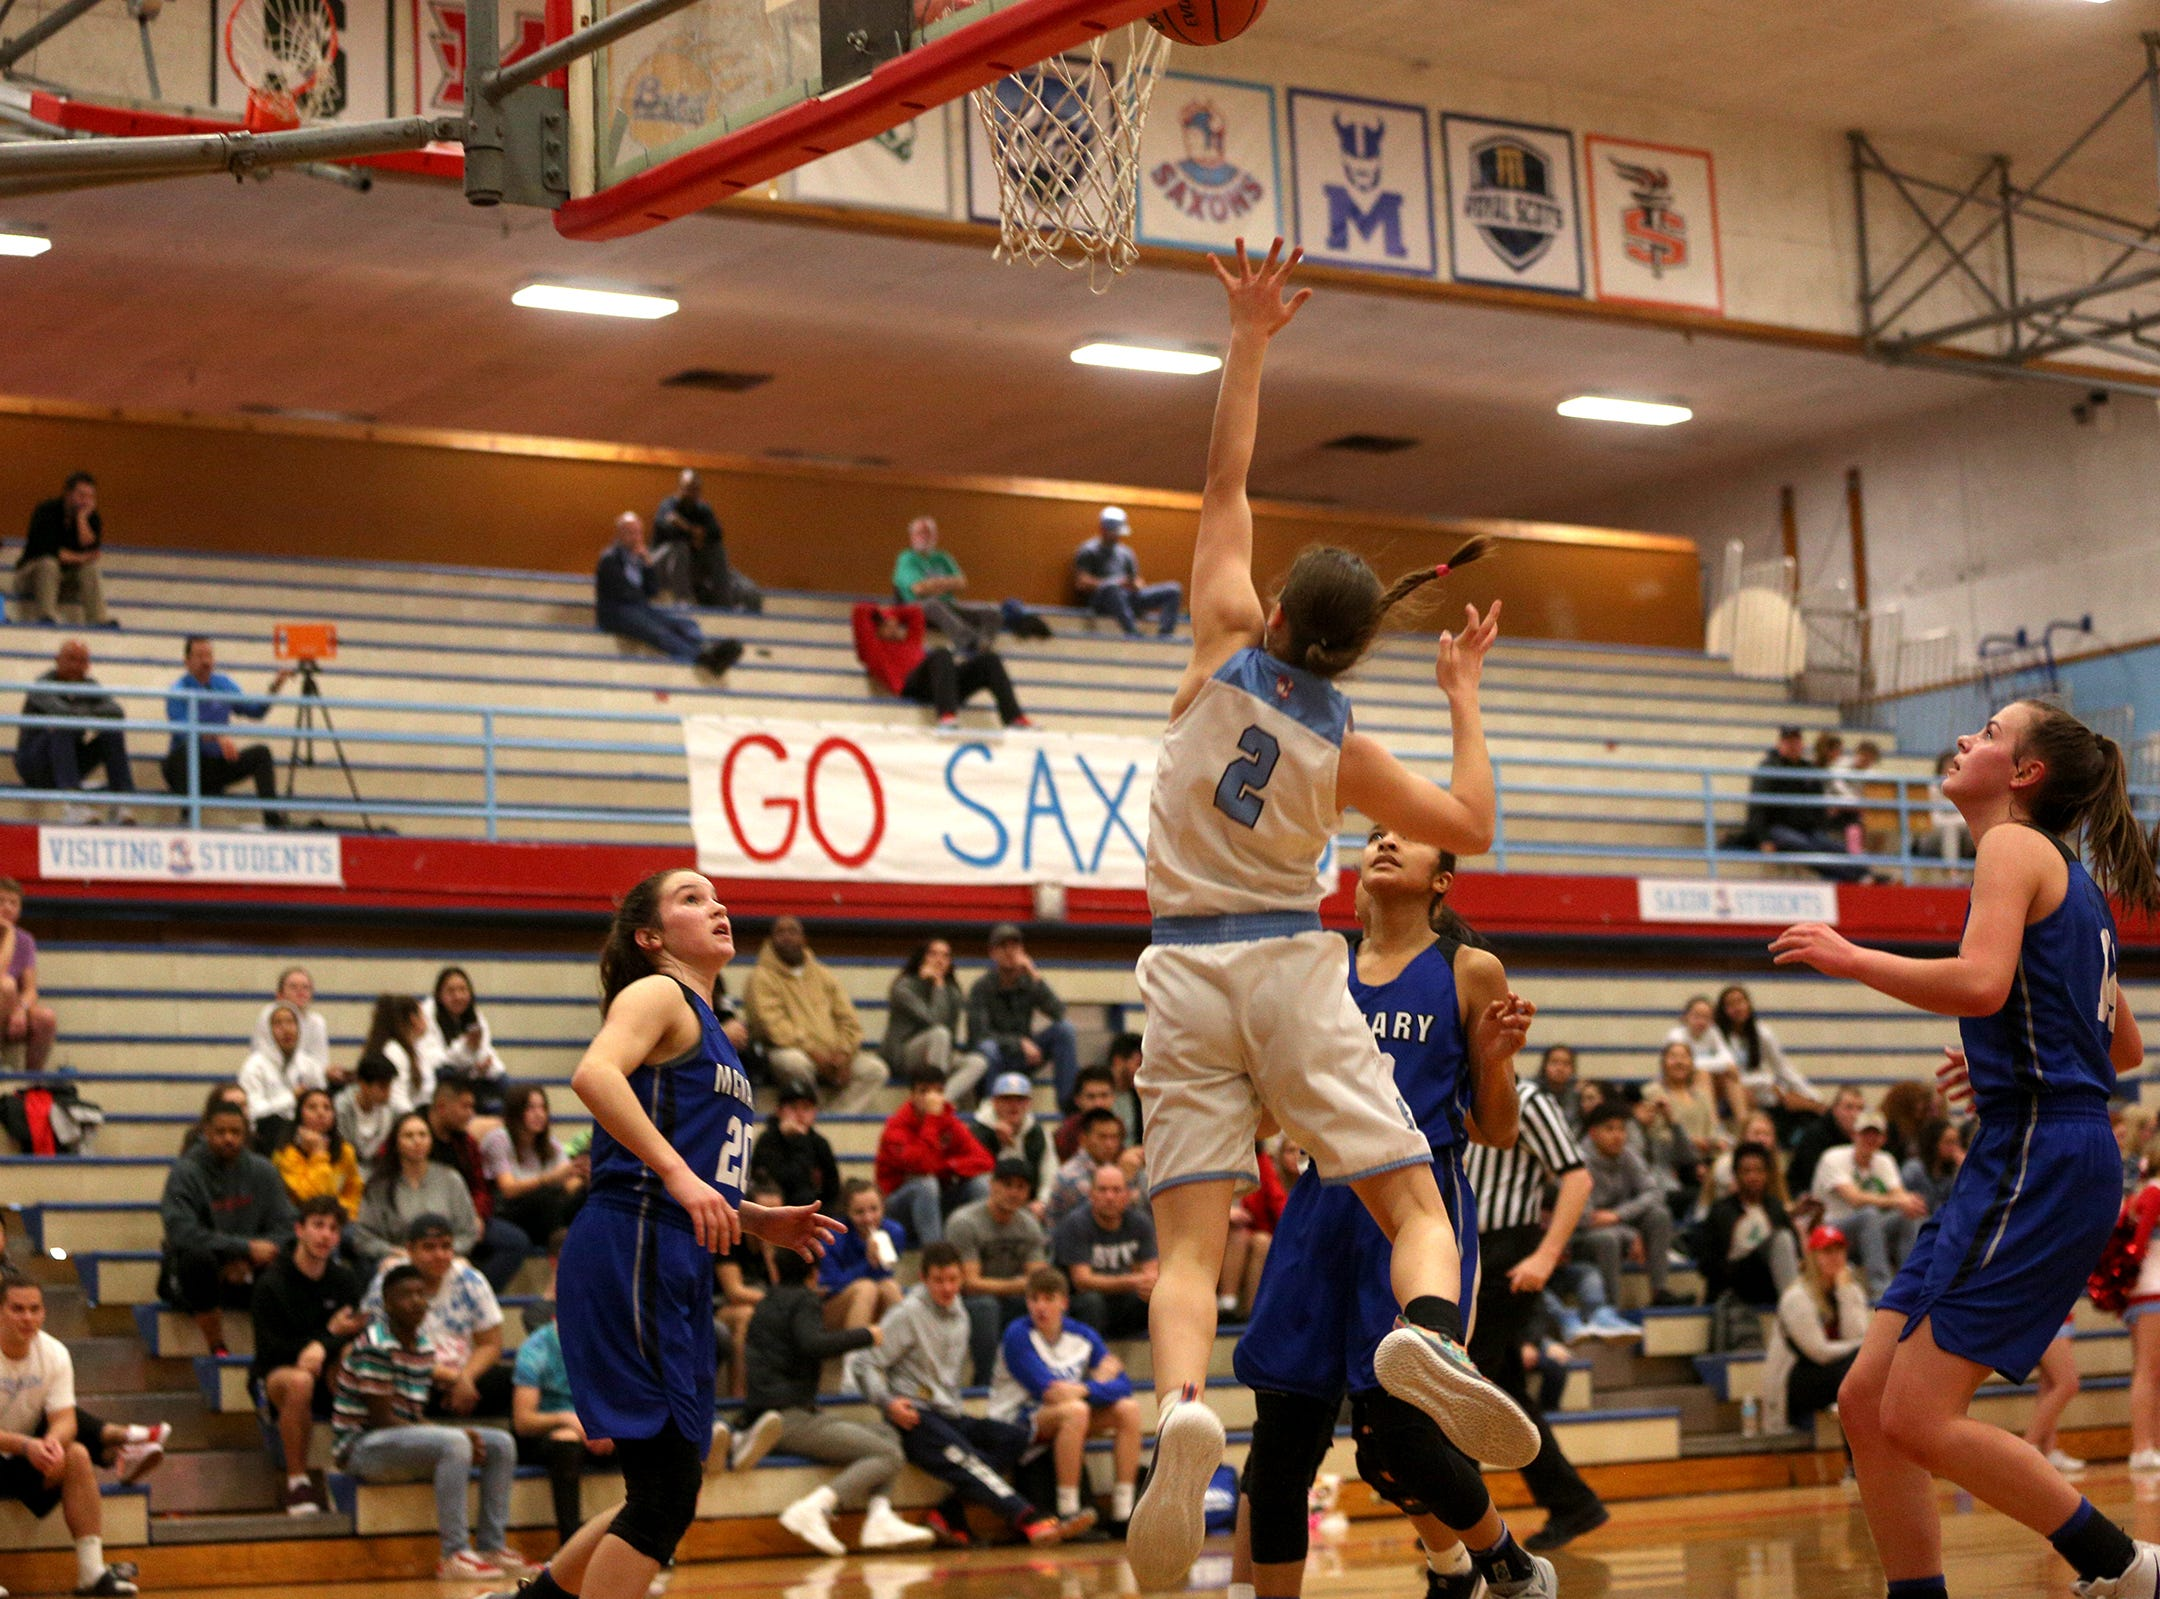 McNary's Hilary James (2) attempts to get the ball in during the South Salem High School girls basketball game against McNary High School in Salem on Thursday, Jan. 31, 2019.